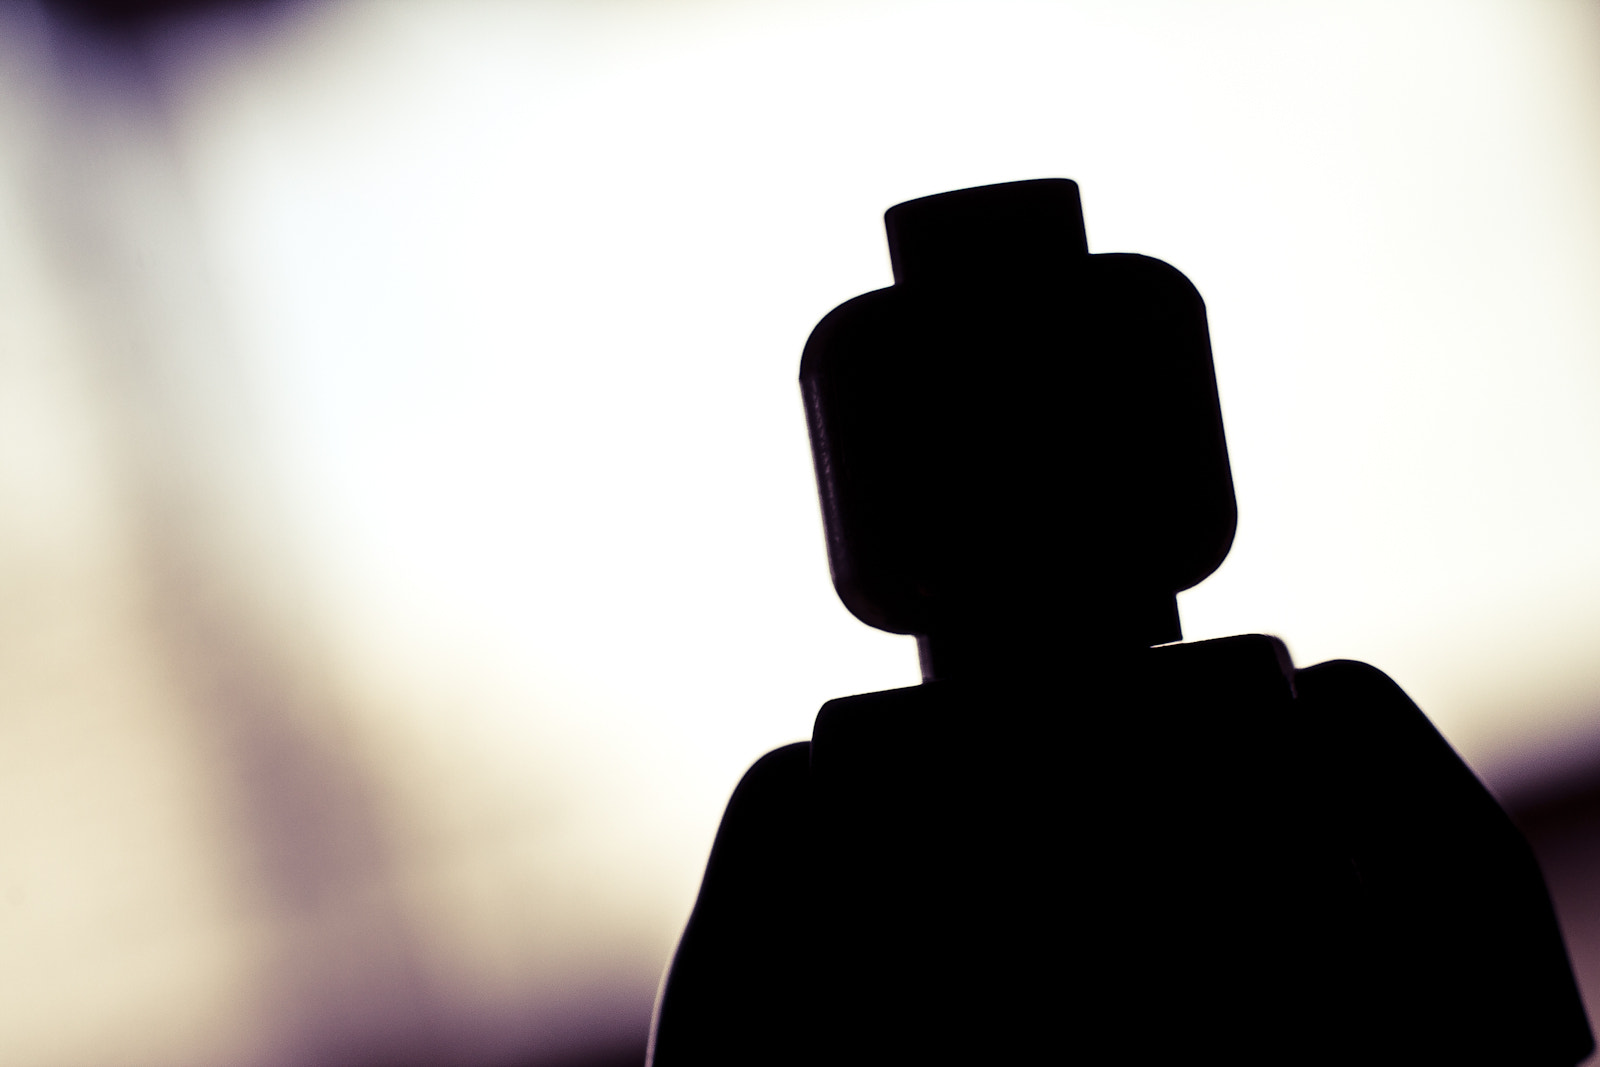 Photograph Lego Man Silhouette by David Lierman on 500px